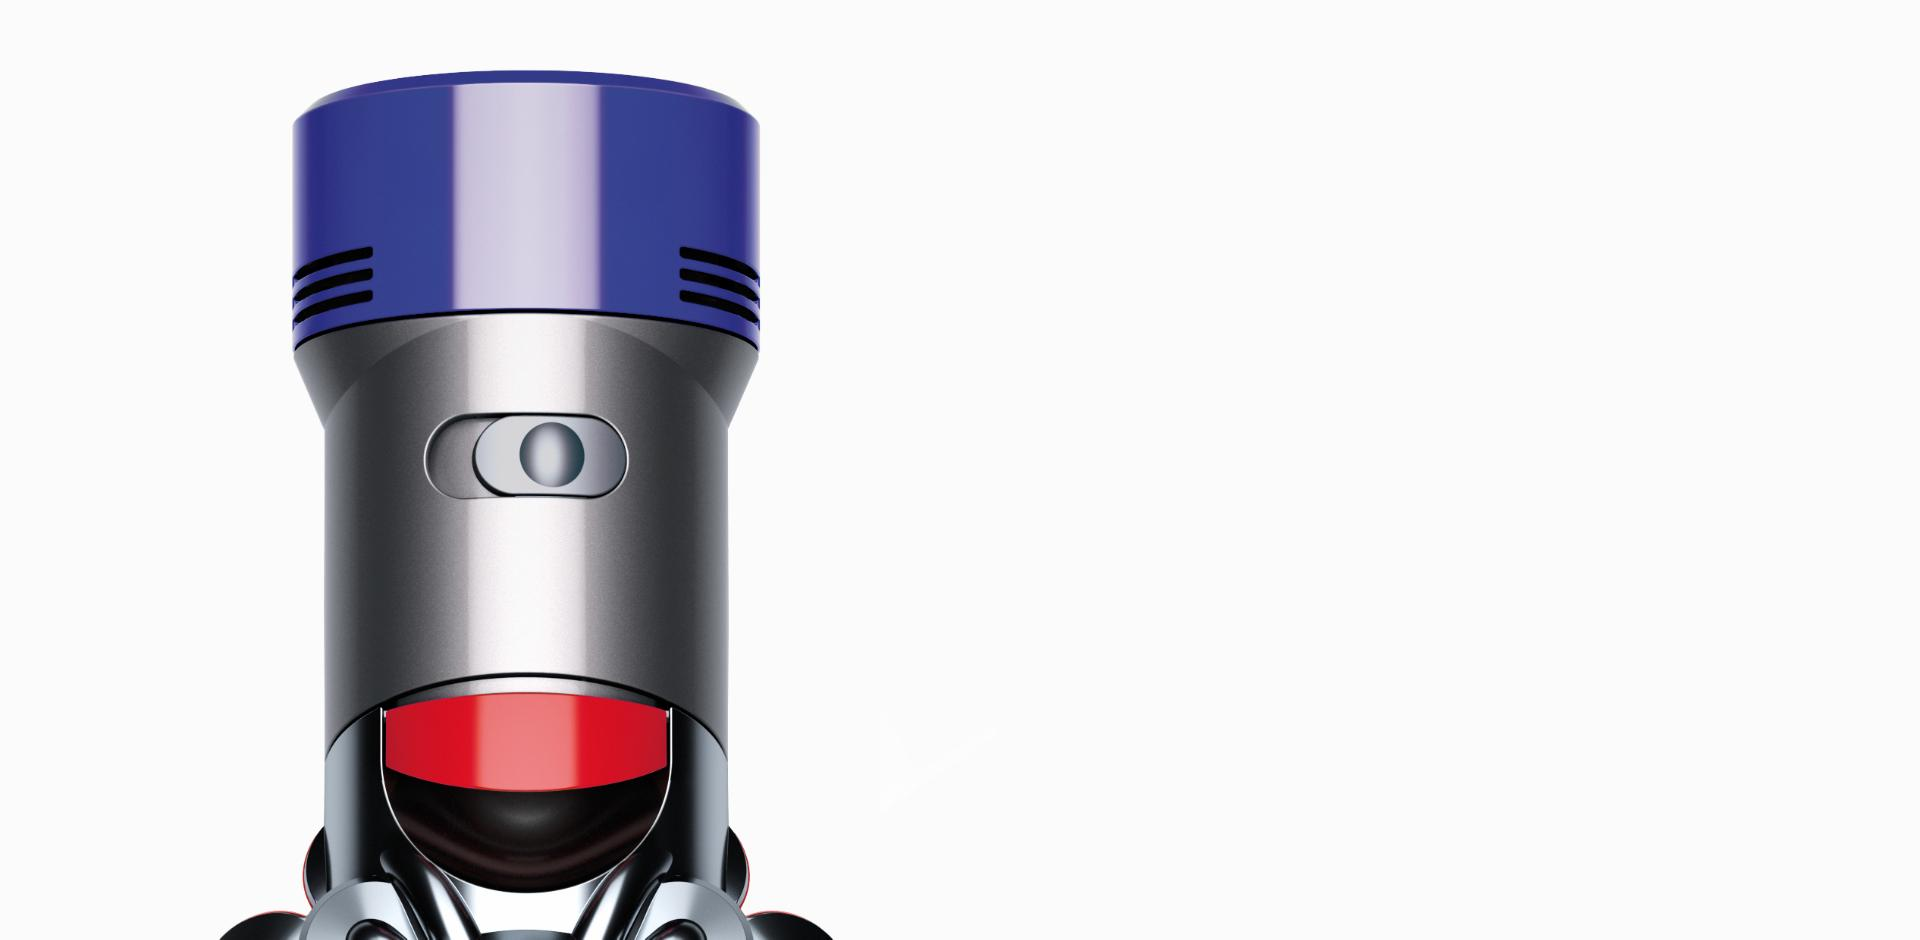 Close up of the Dyson V8 cord-free vacuum's two power modes